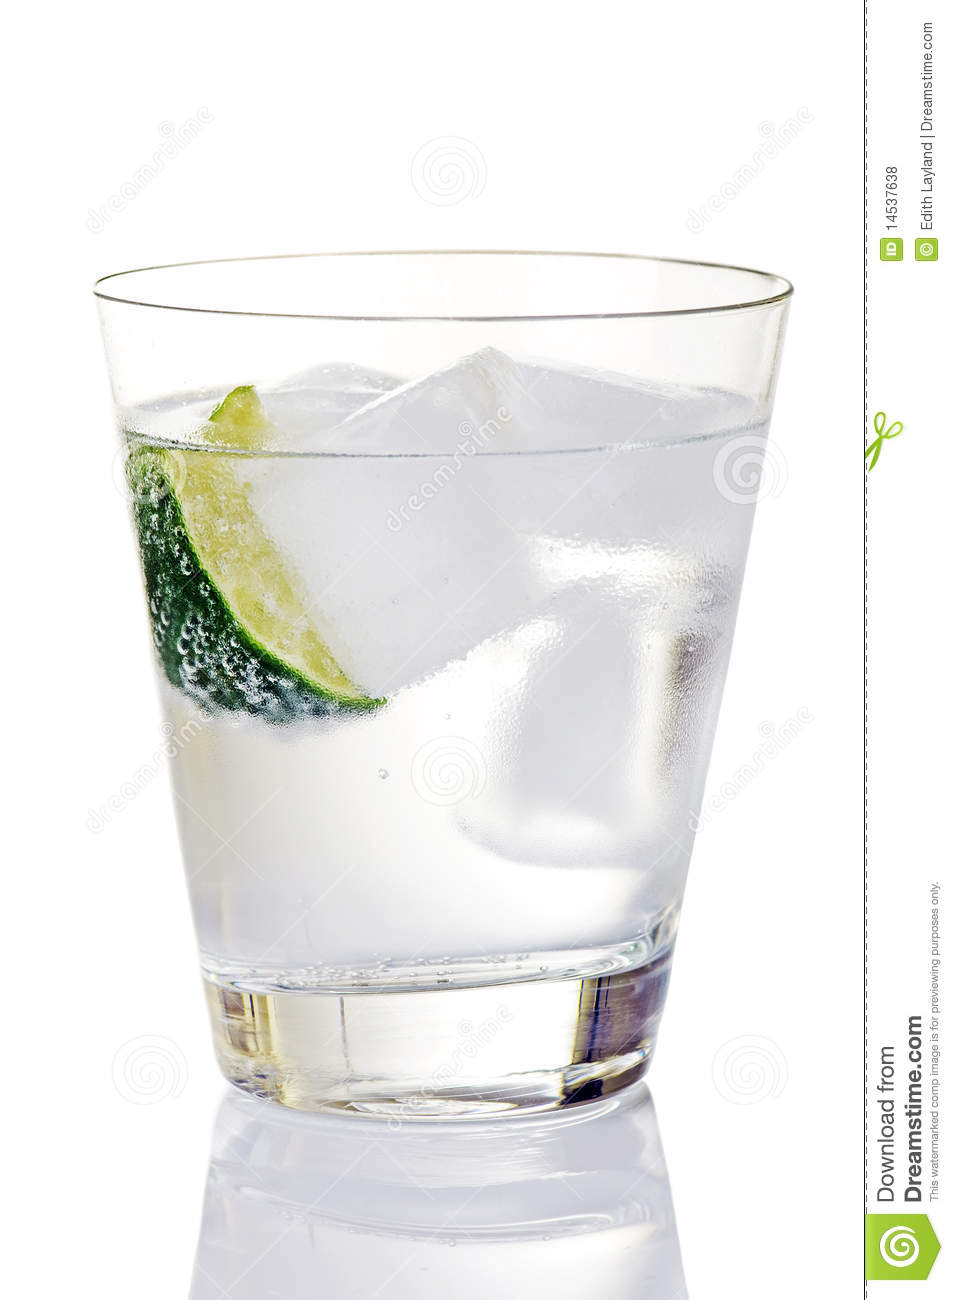 ... On Ice With Lime Wedge Royalty Free Stock Photos - Image: 14537638